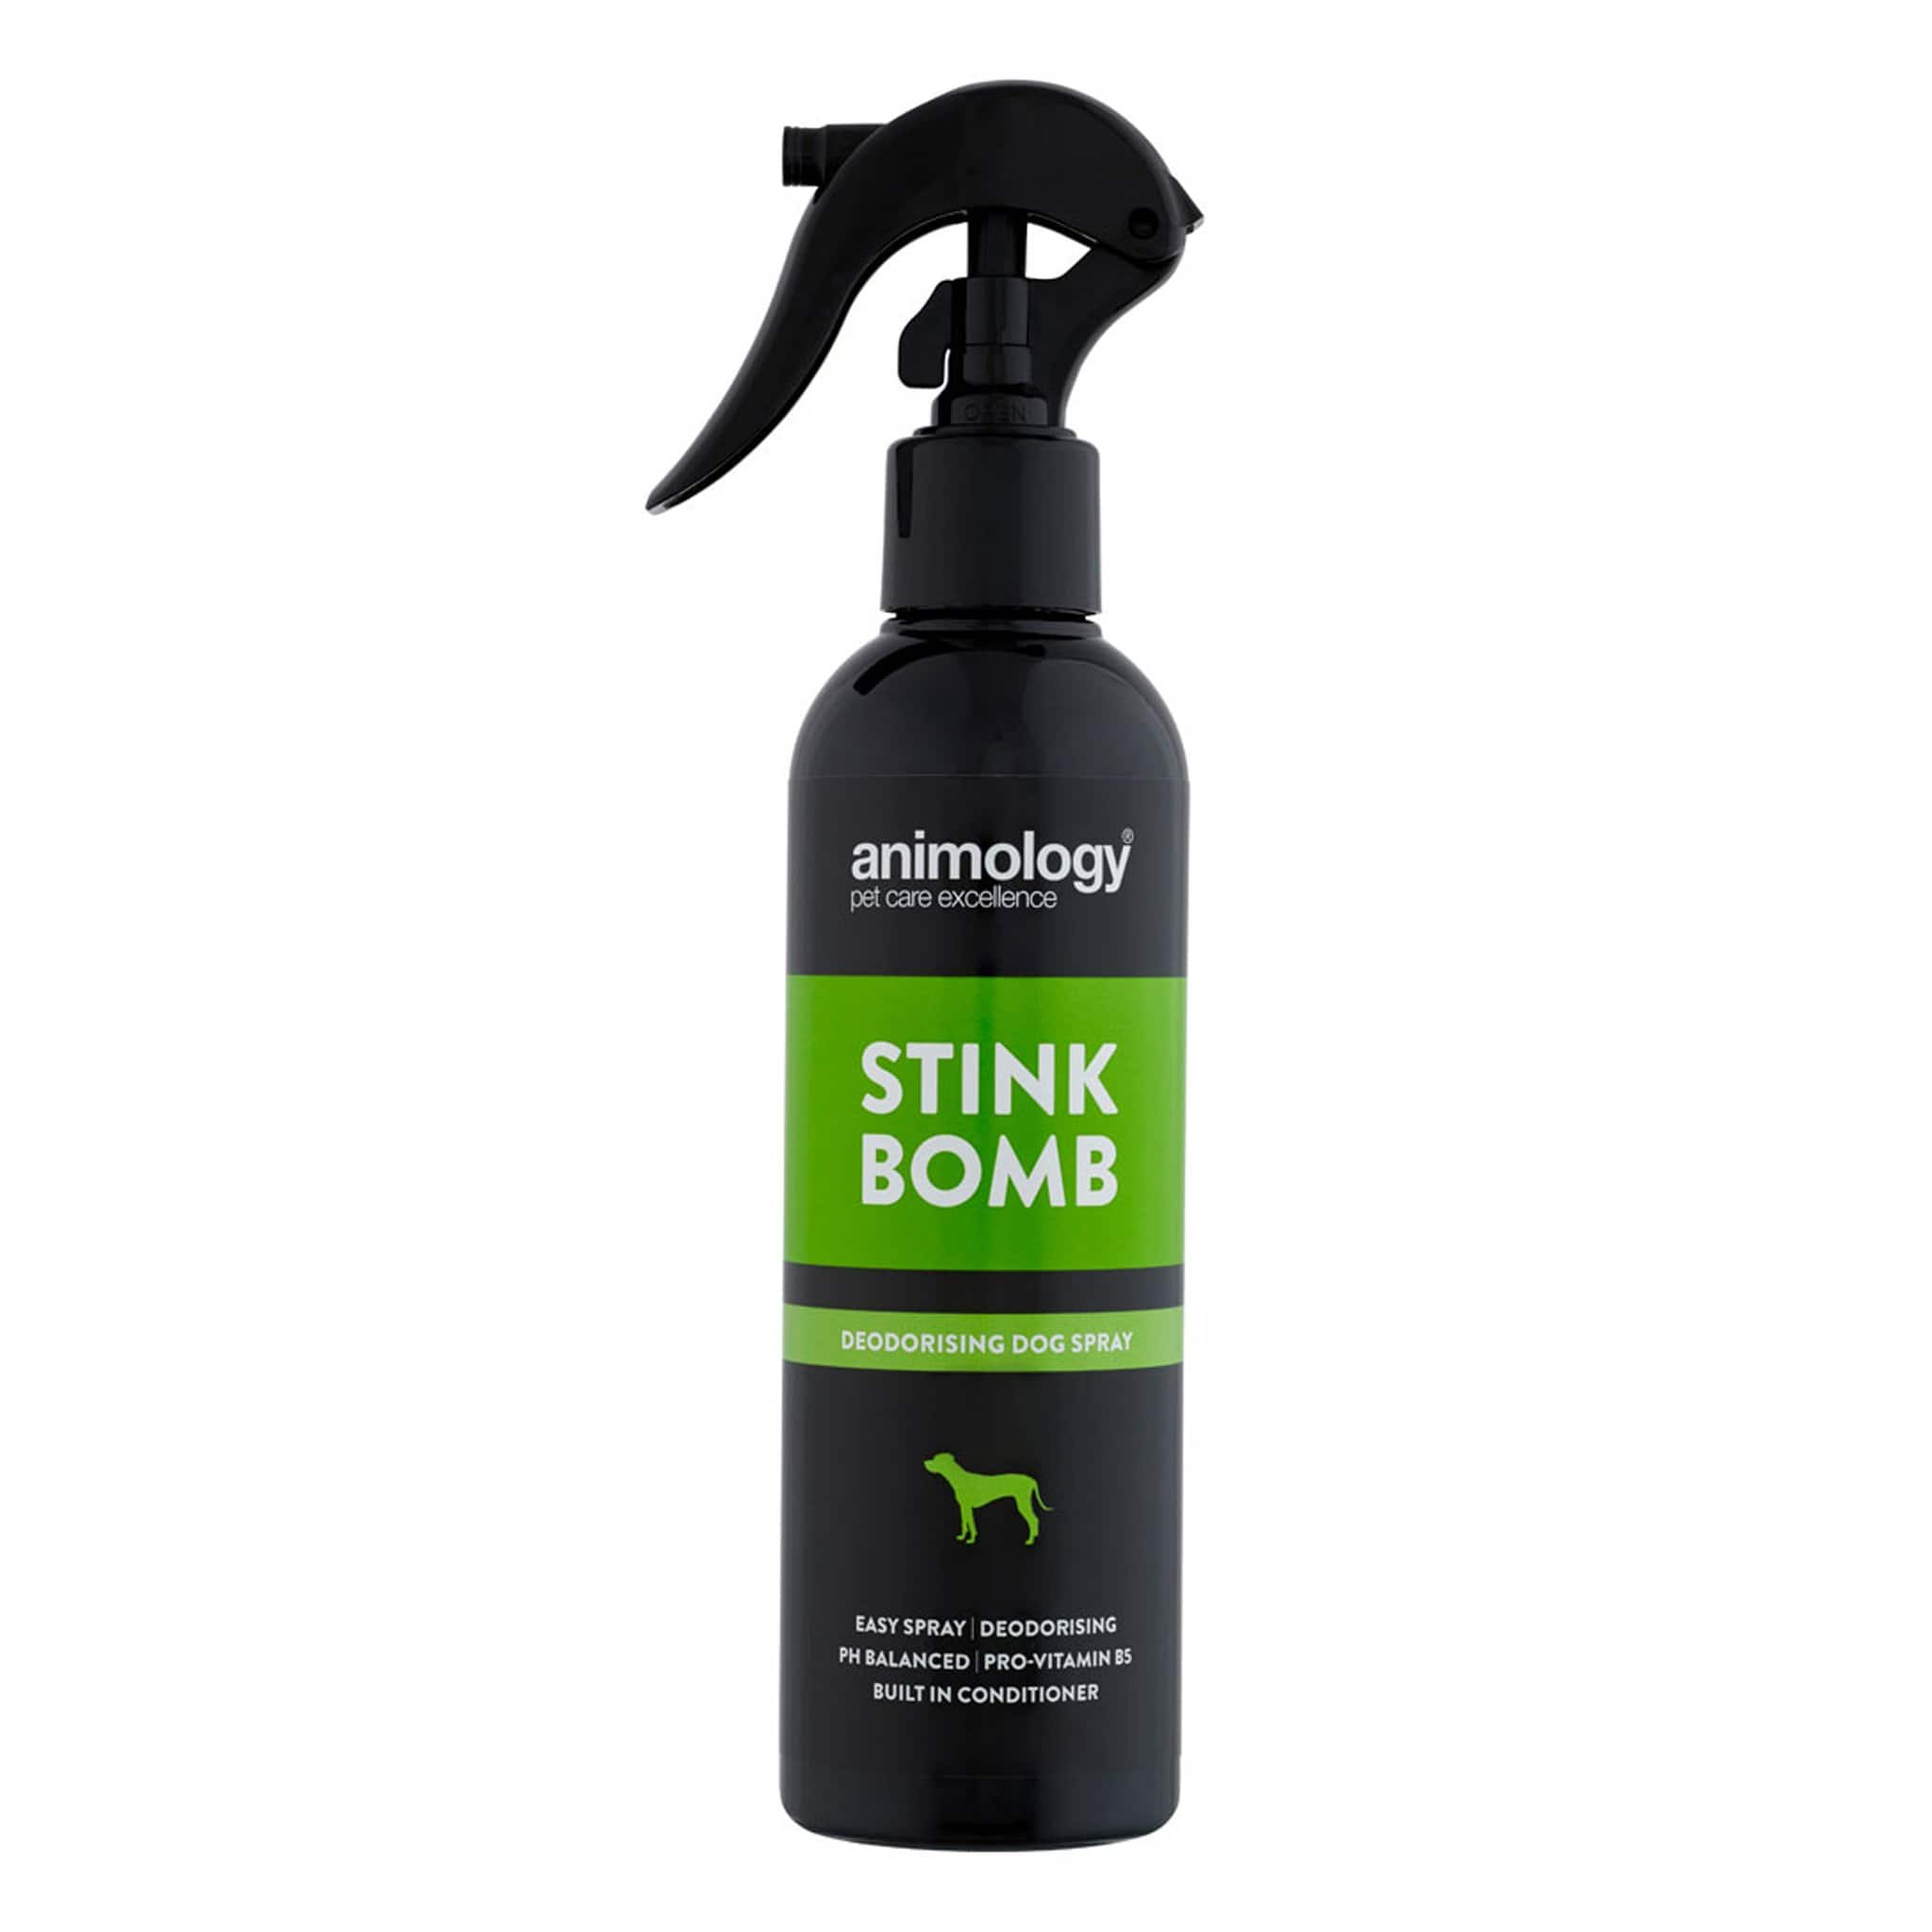 Animology Stink Bomb Deodorising Dog Spray 250ML 5789.